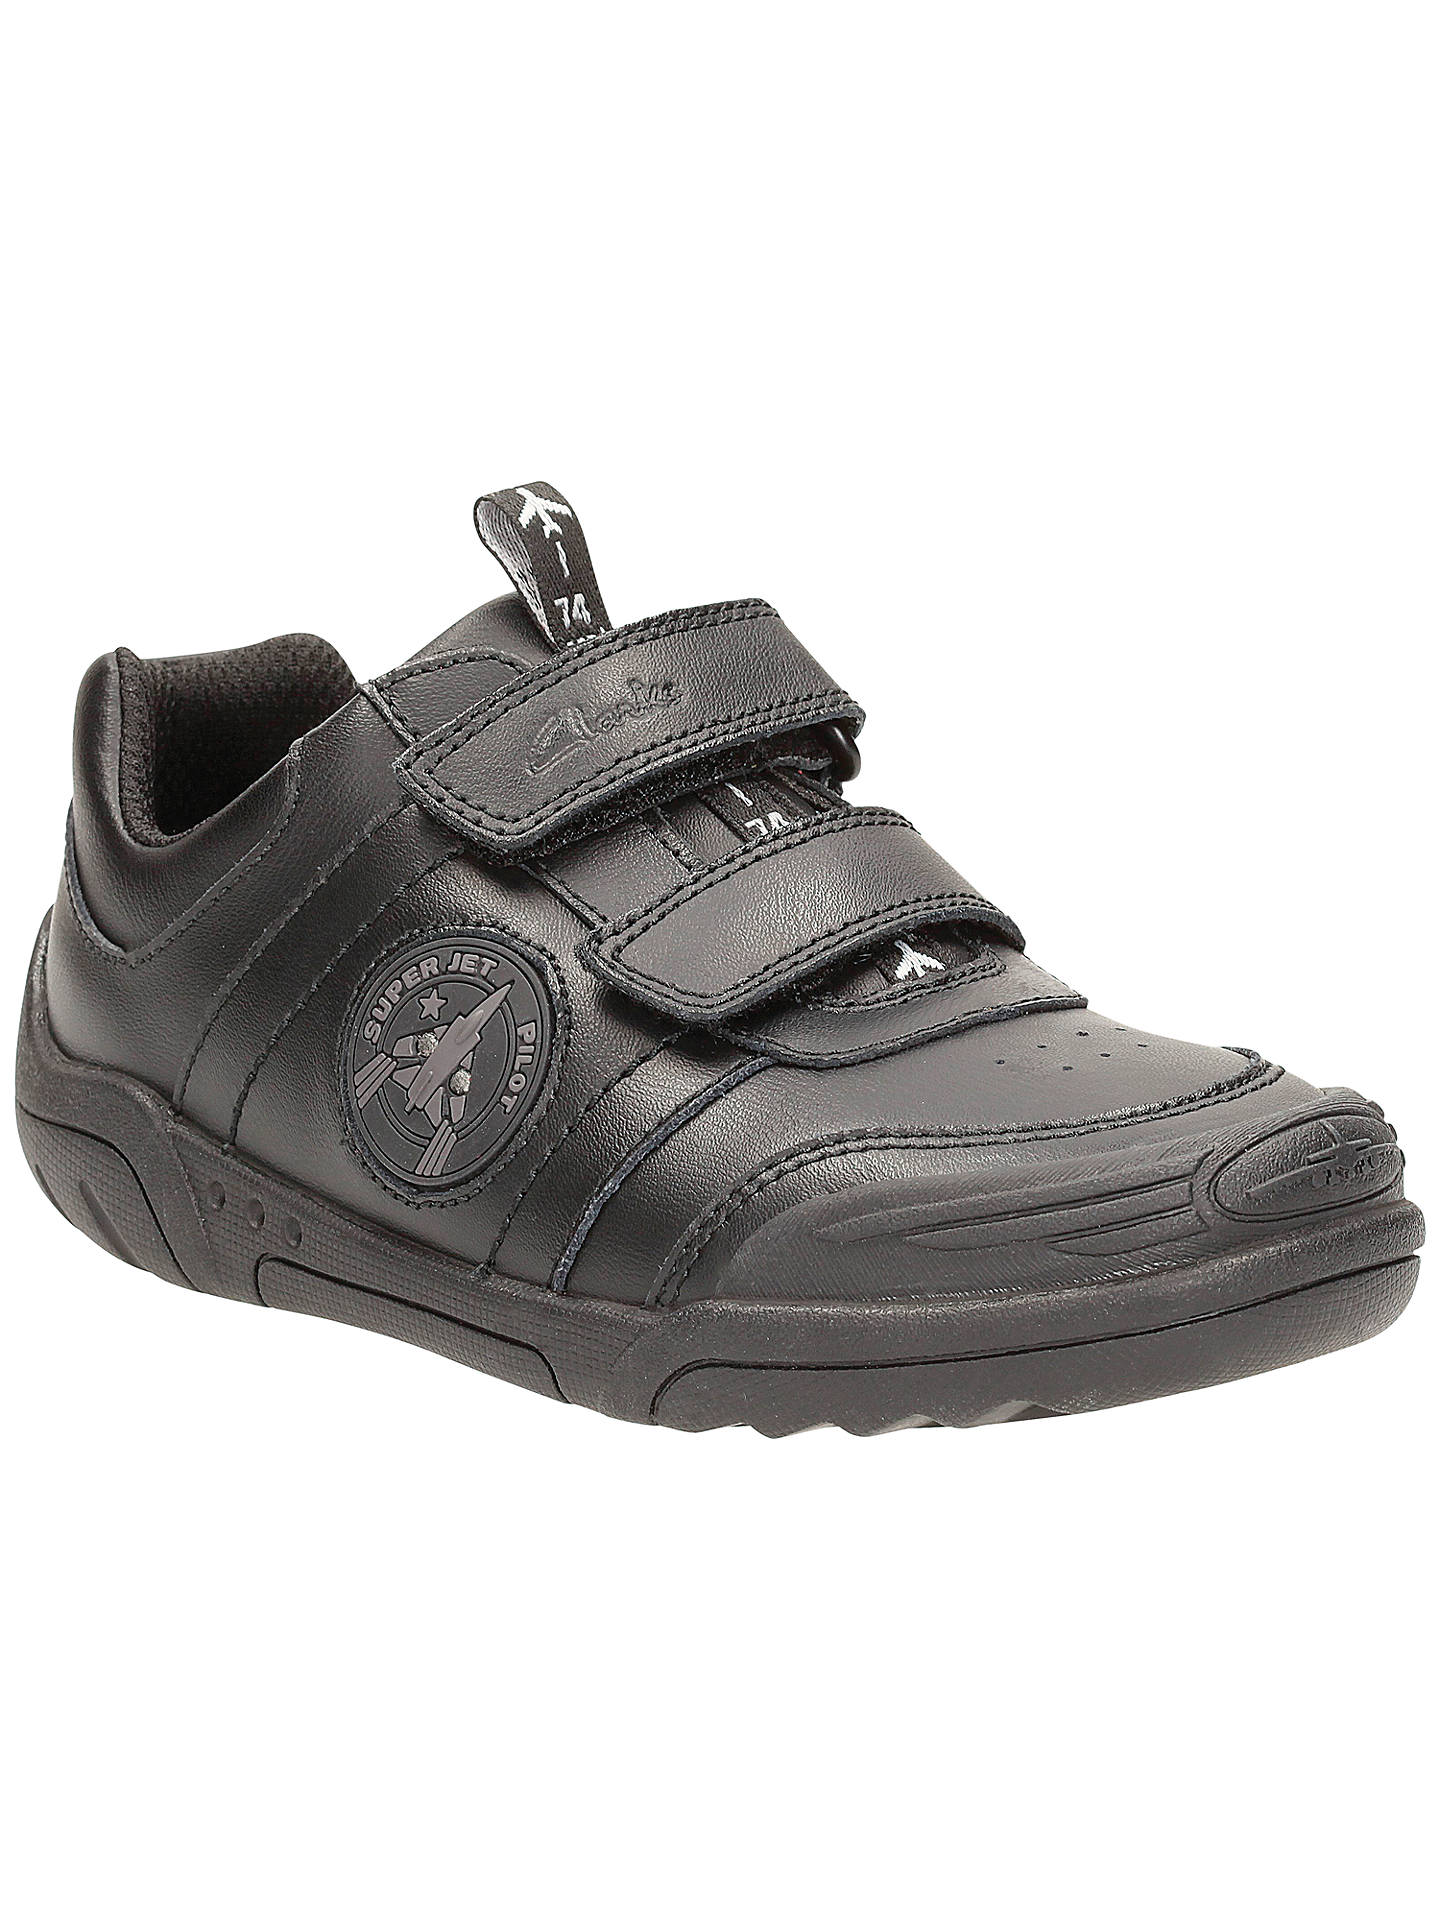 eb3e136a32ed Buy Clarks Children s Wing Smart School Shoes